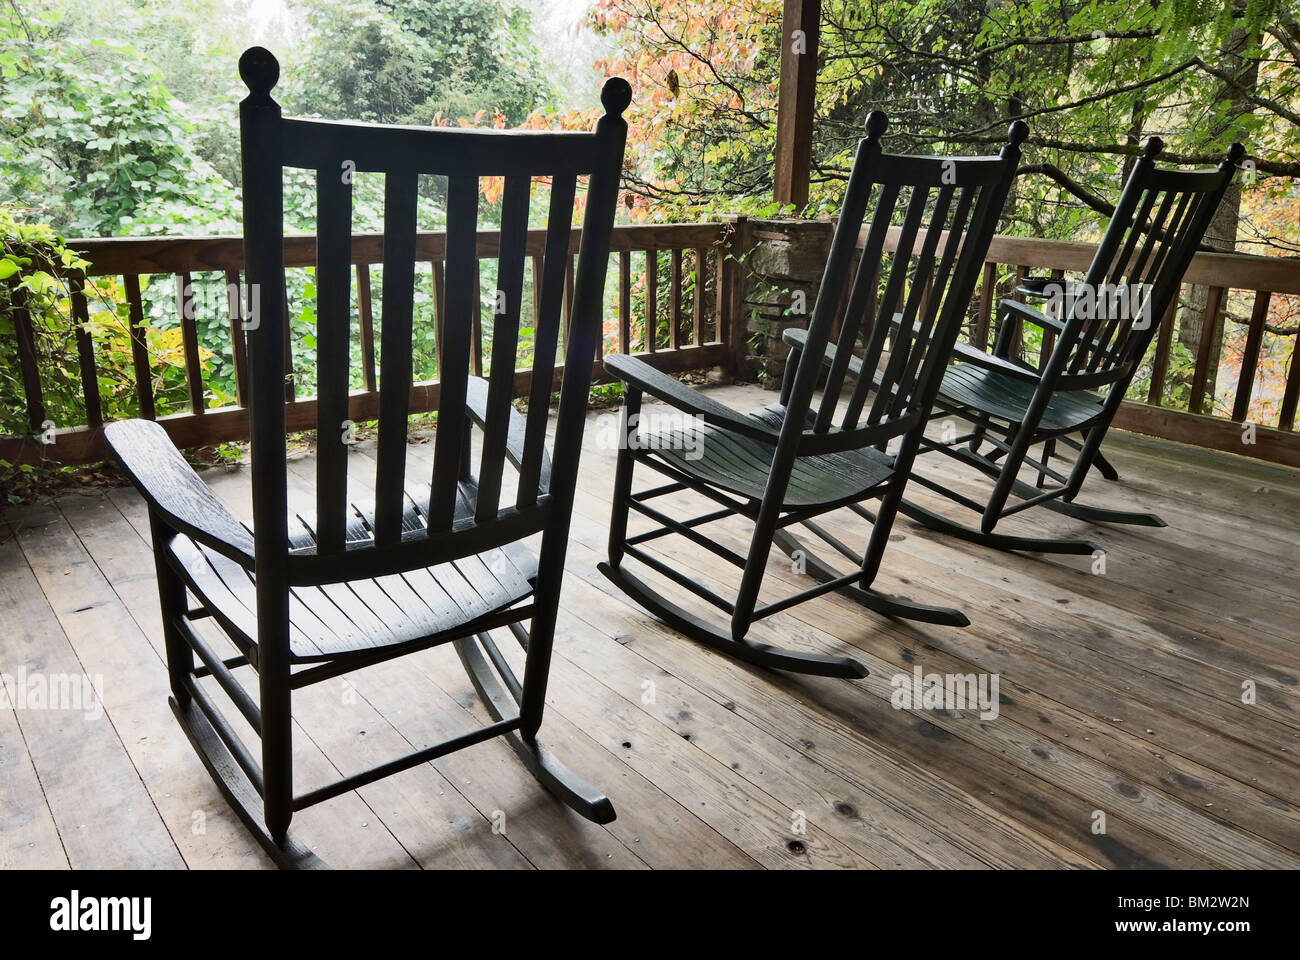 Rocking Chairs On Porch, North Carolina, USA